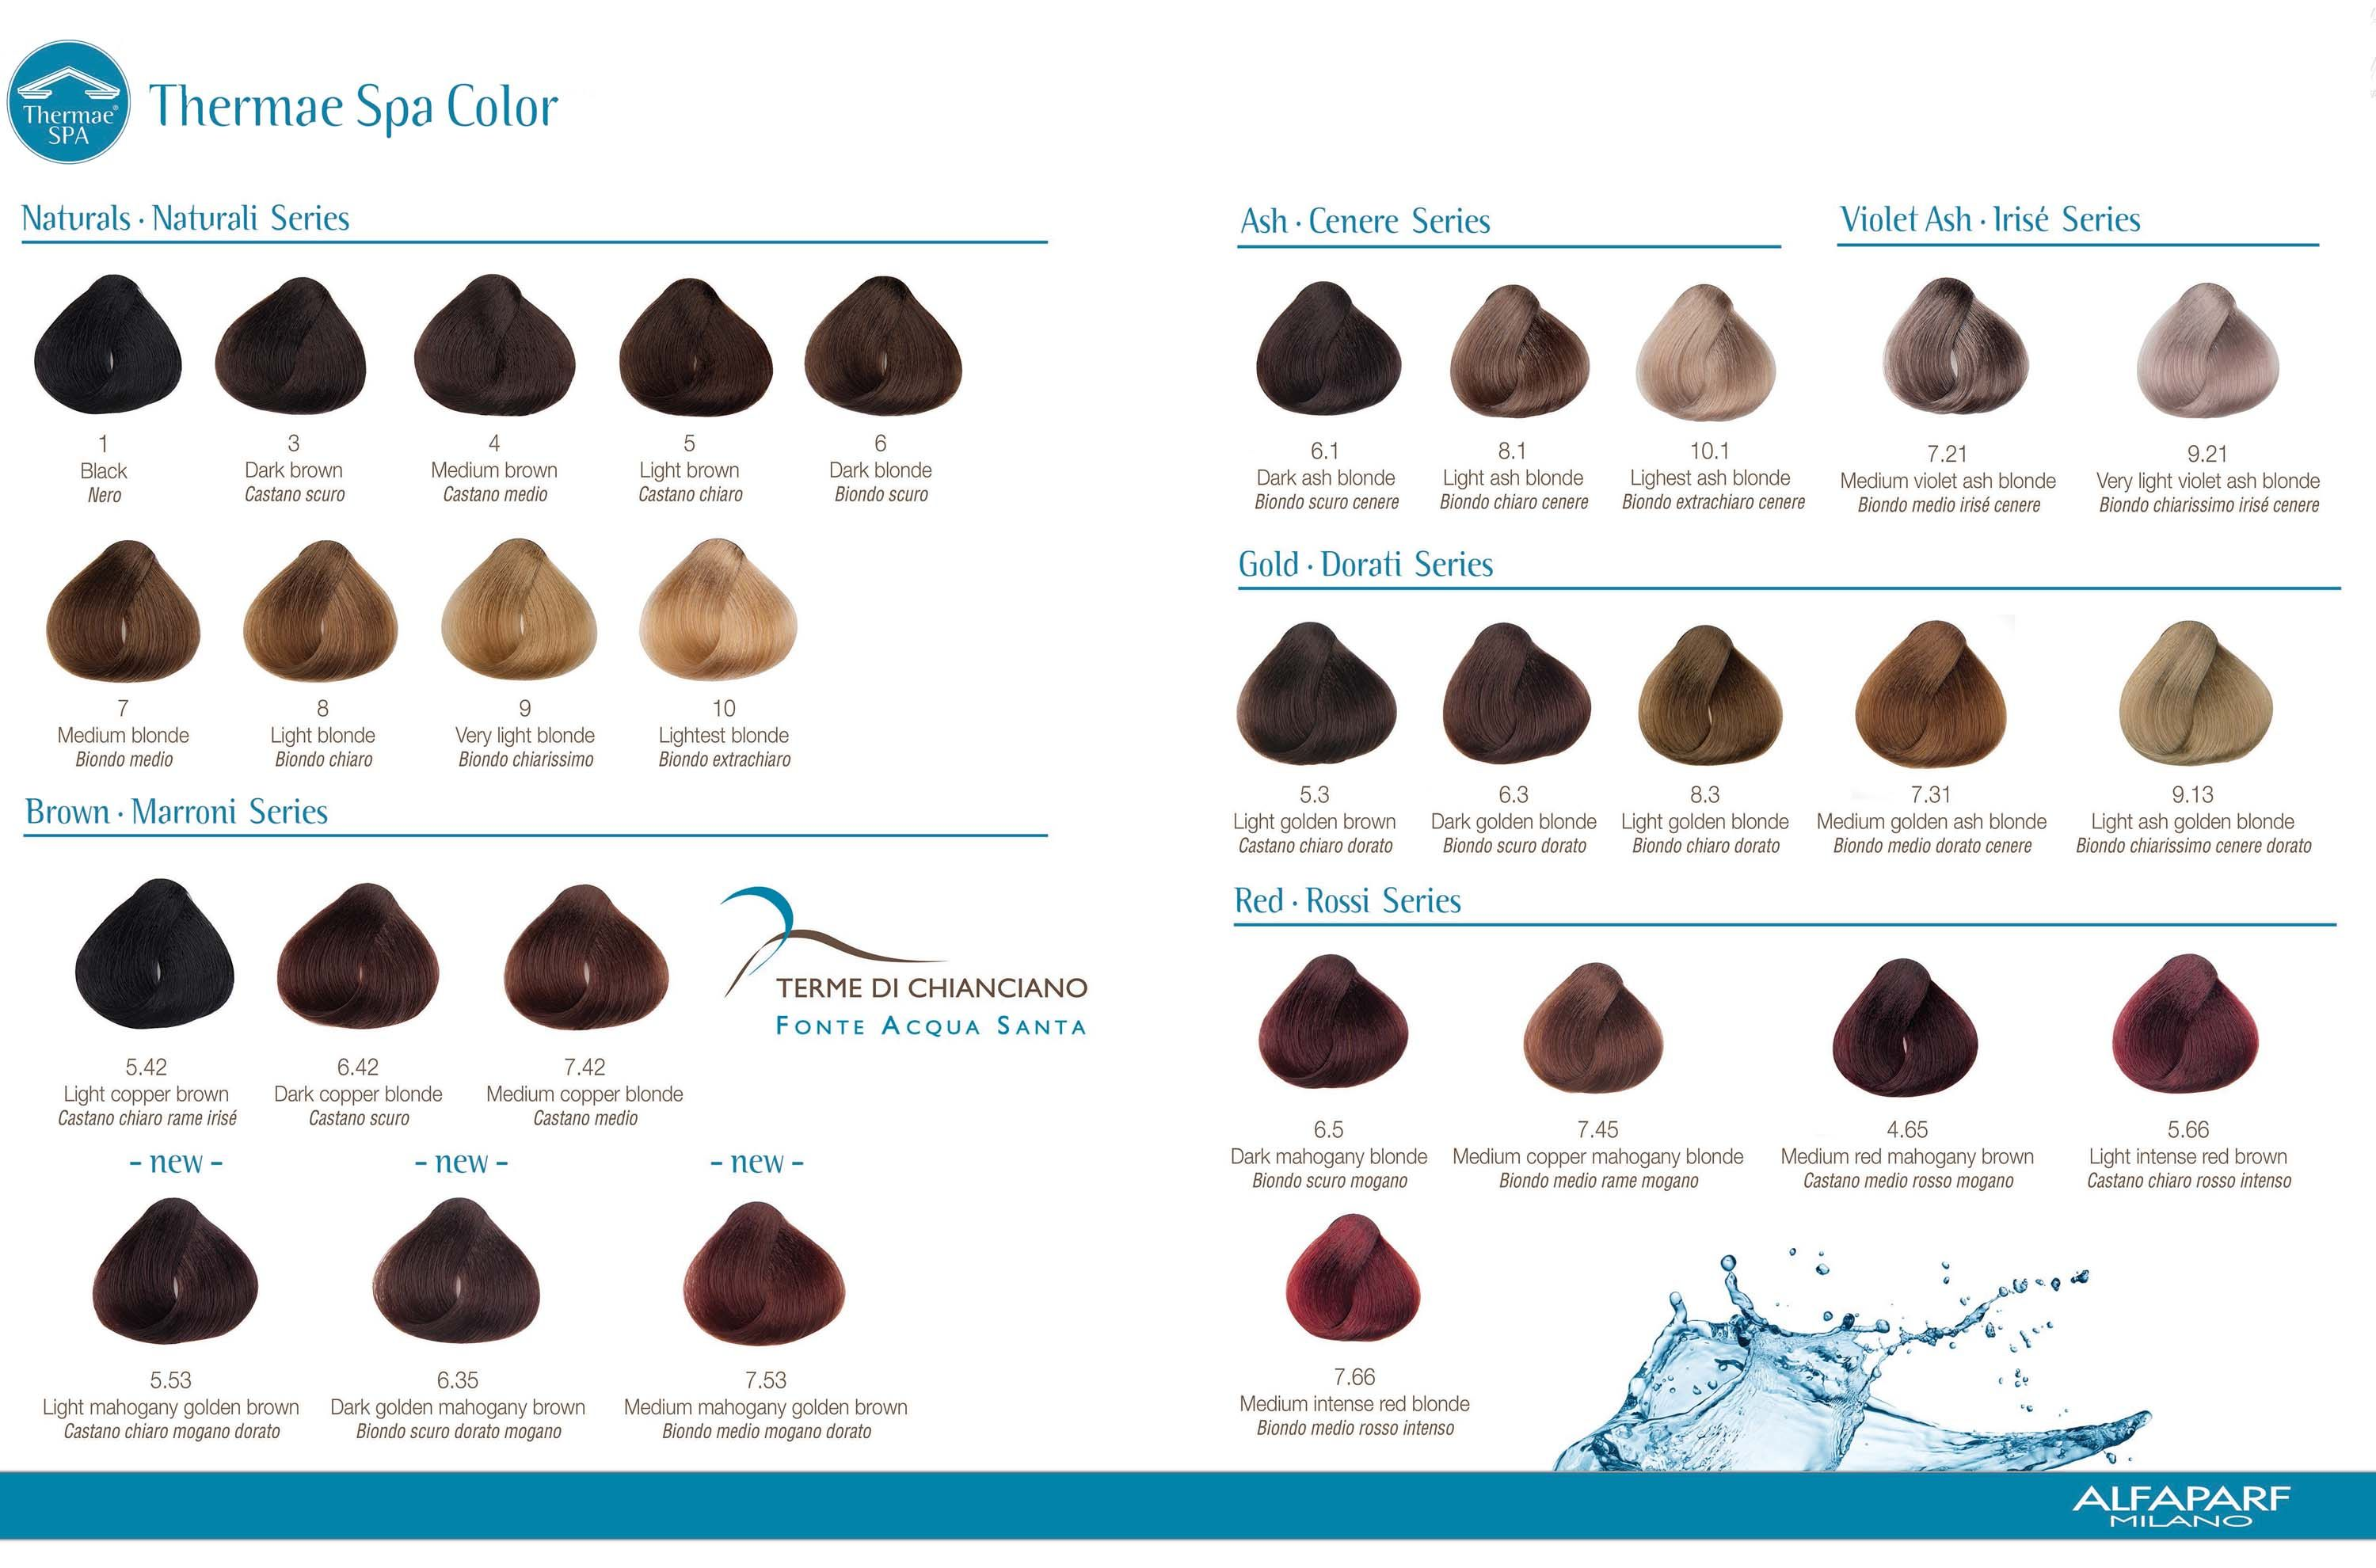 Color chart yellow alfaparf evolution hair color in 2016 amazing alfaparf thermae spa color chart nvjuhfo Images